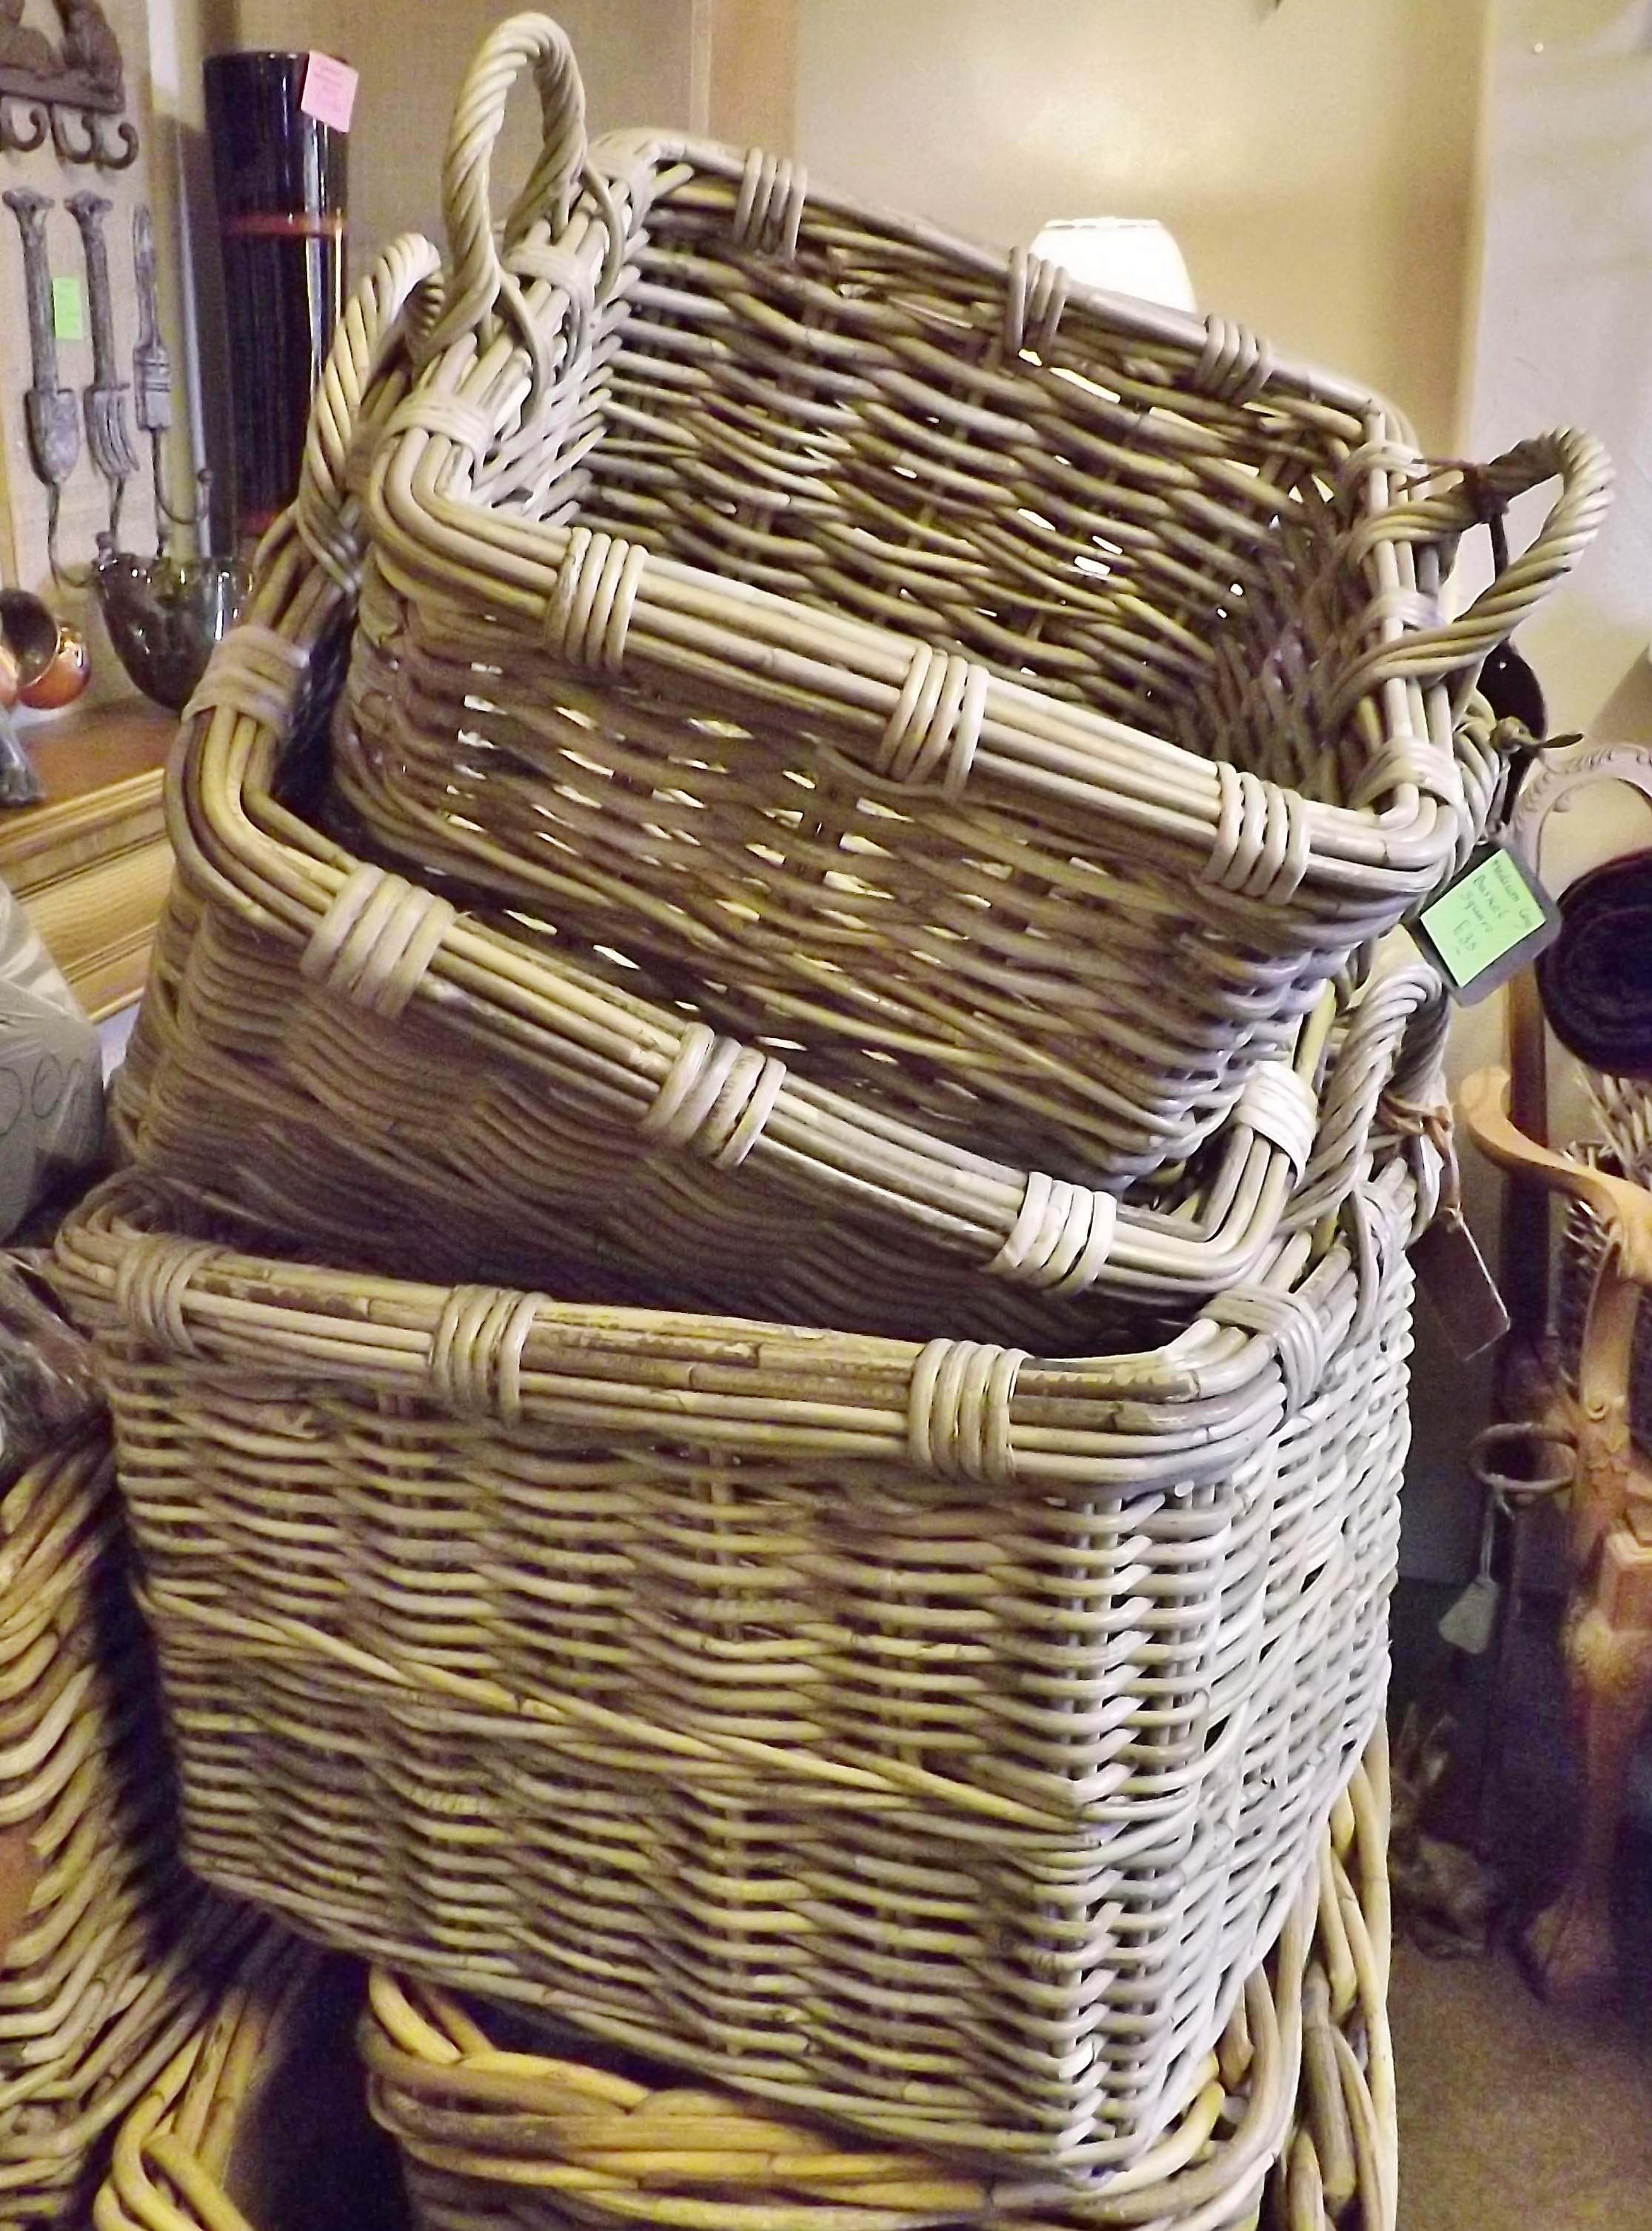 Wicker Baskets various sizes.